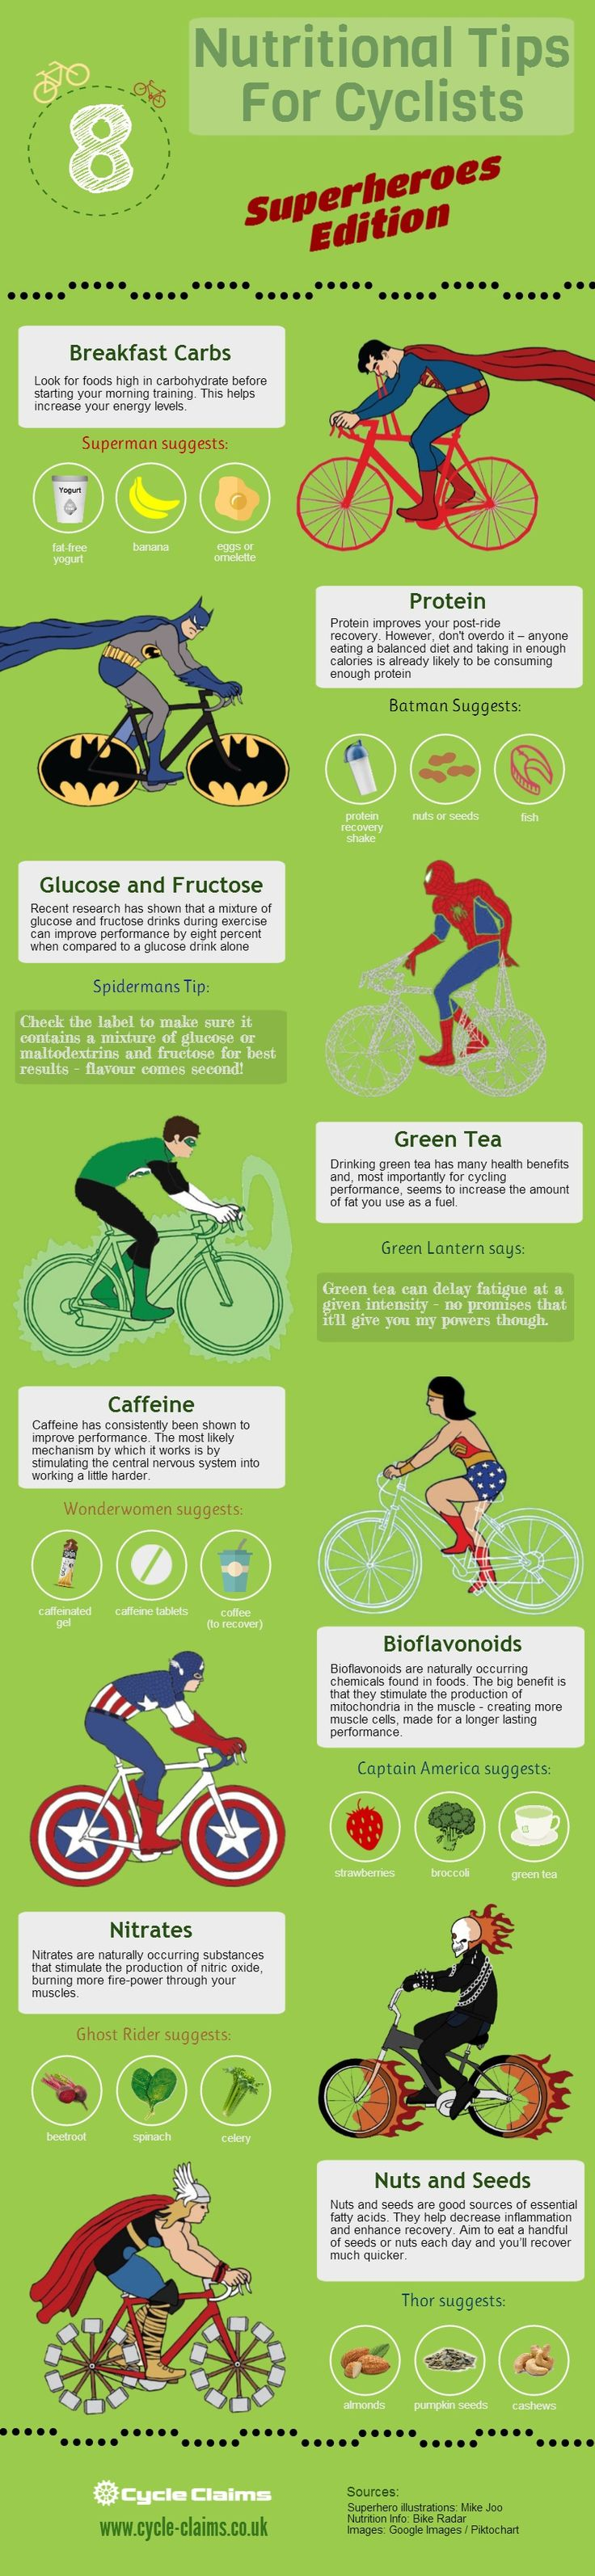 8 Nutritional Tips For Cyclists #Cycling #HealthyDiet #Fitness #infographic #Health